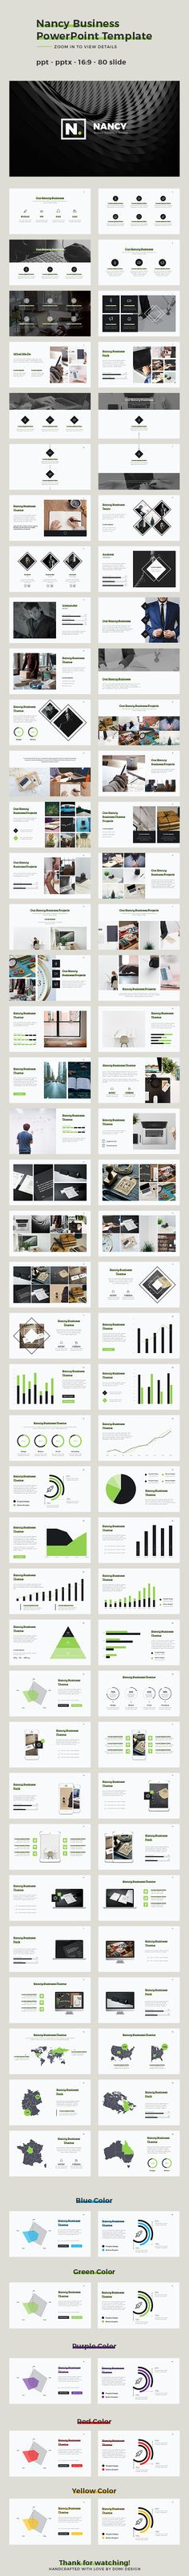 Nancy Business  PowerPoint Template. Download here: http://graphicriver.net/item/nancy-business-powerpoint-template/15720110?ref=ksioks